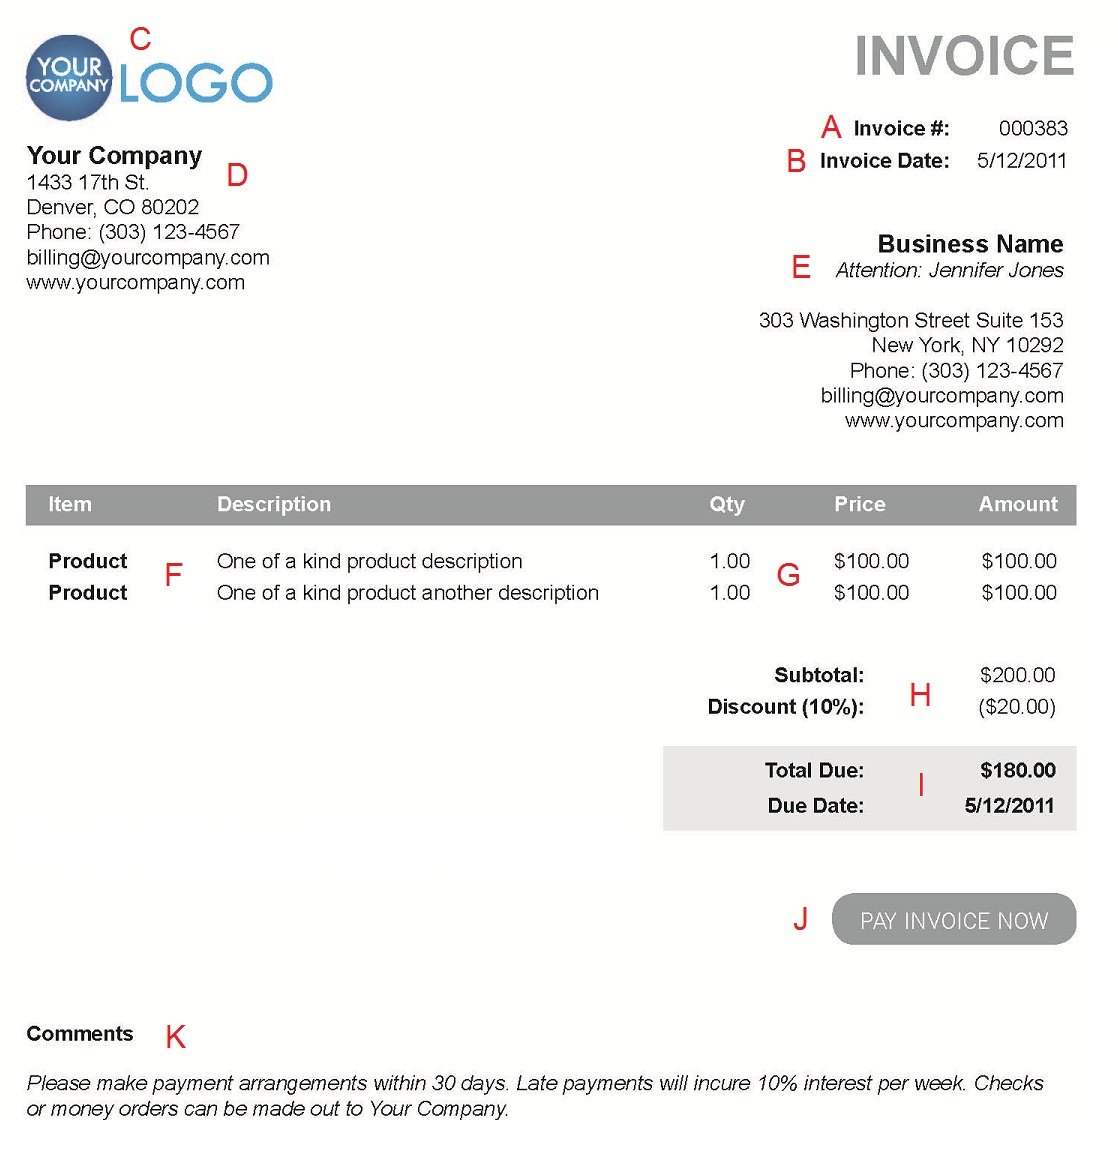 Coolmathgamesus  Winsome The  Different Sections Of An Electronic Payment Invoice With Heavenly A  With Amazing Car Rental Invoice Format Also How To Invoice For Services In Addition Invoice Payment System And Free Html Invoice Template As Well As Free Billing Invoice Software Additionally Software Invoice Format From Paysimplecom With Coolmathgamesus  Heavenly The  Different Sections Of An Electronic Payment Invoice With Amazing A  And Winsome Car Rental Invoice Format Also How To Invoice For Services In Addition Invoice Payment System From Paysimplecom